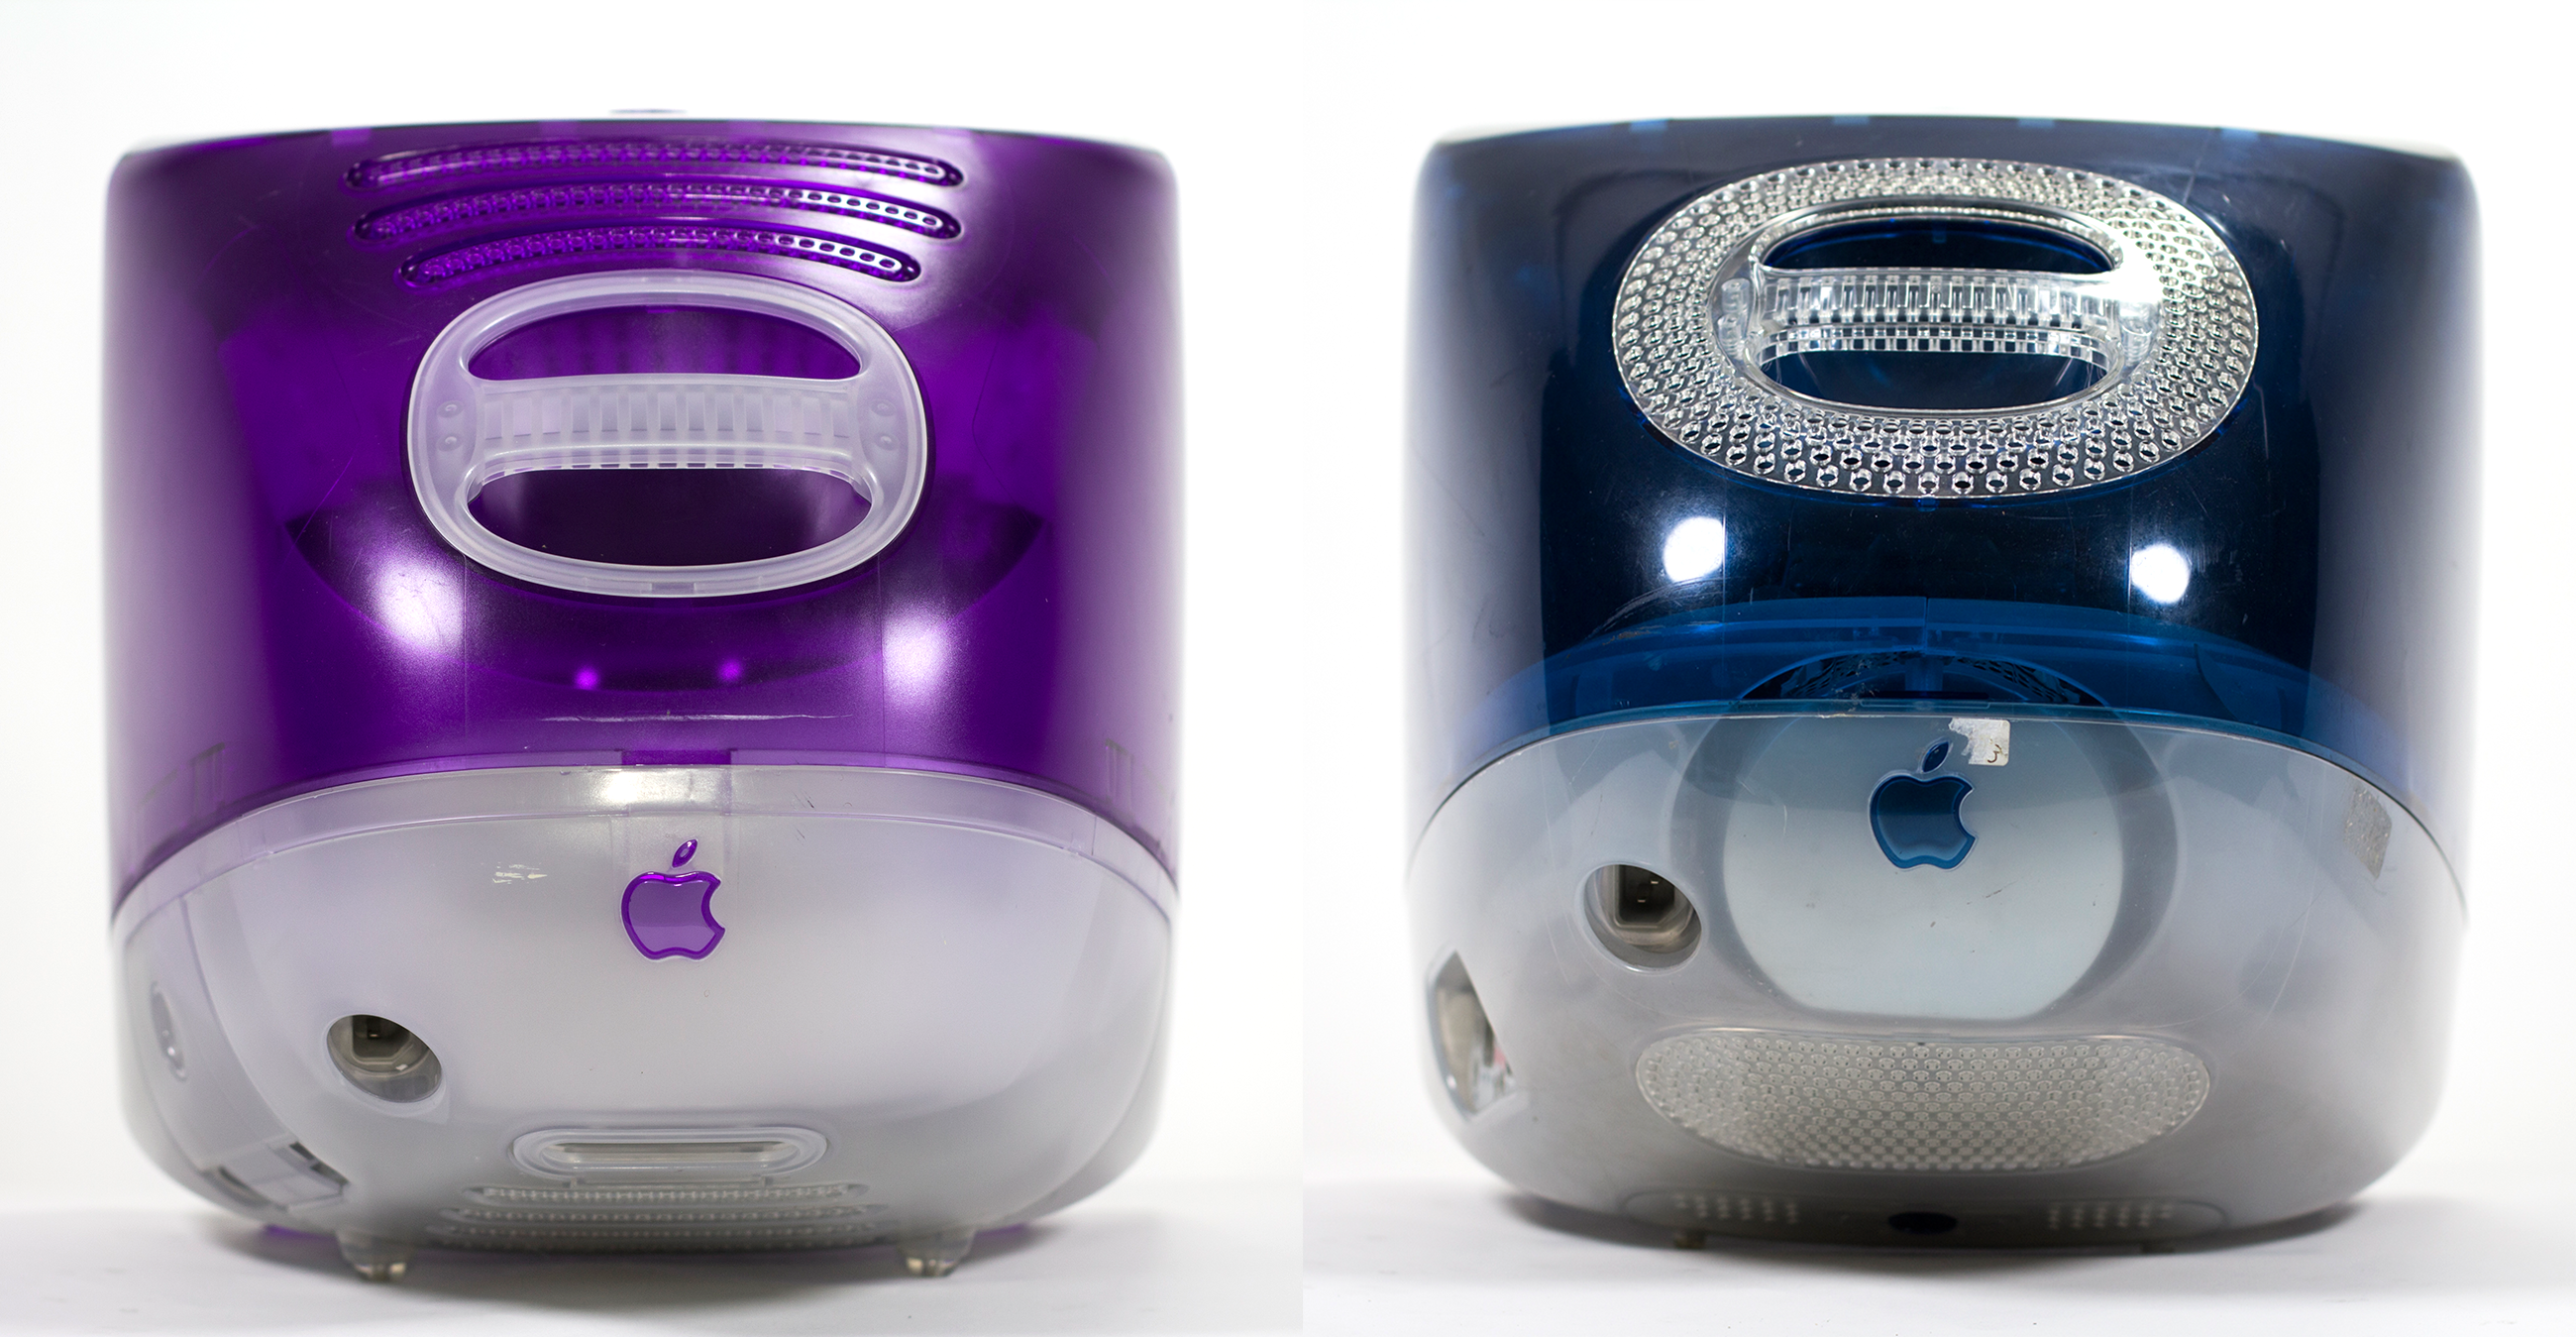 Grape and Indigo iMacs